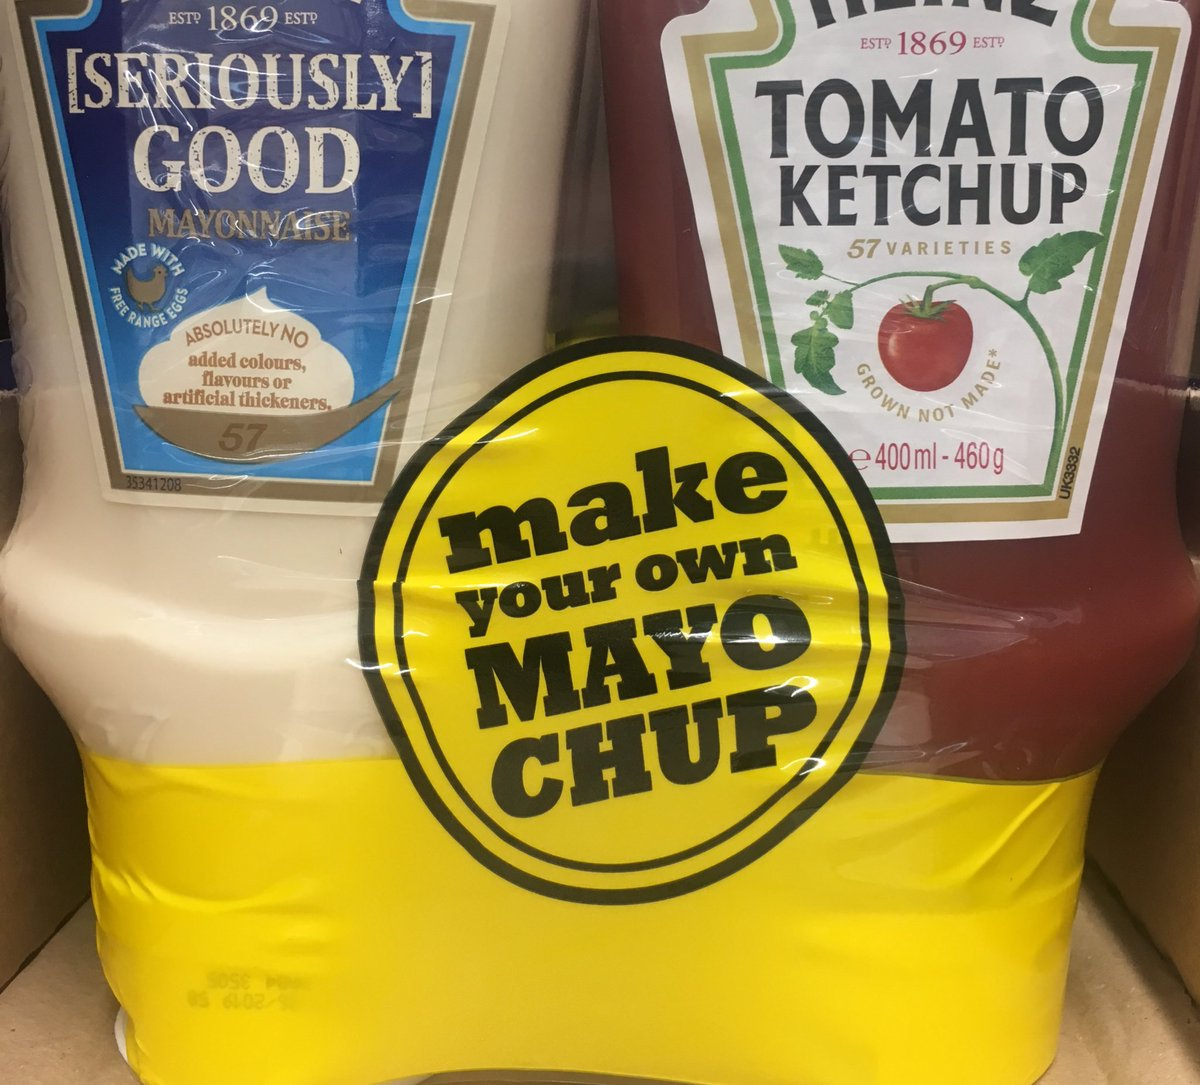 Hate to sound old but isn't that just marie rose?😂#mayochup